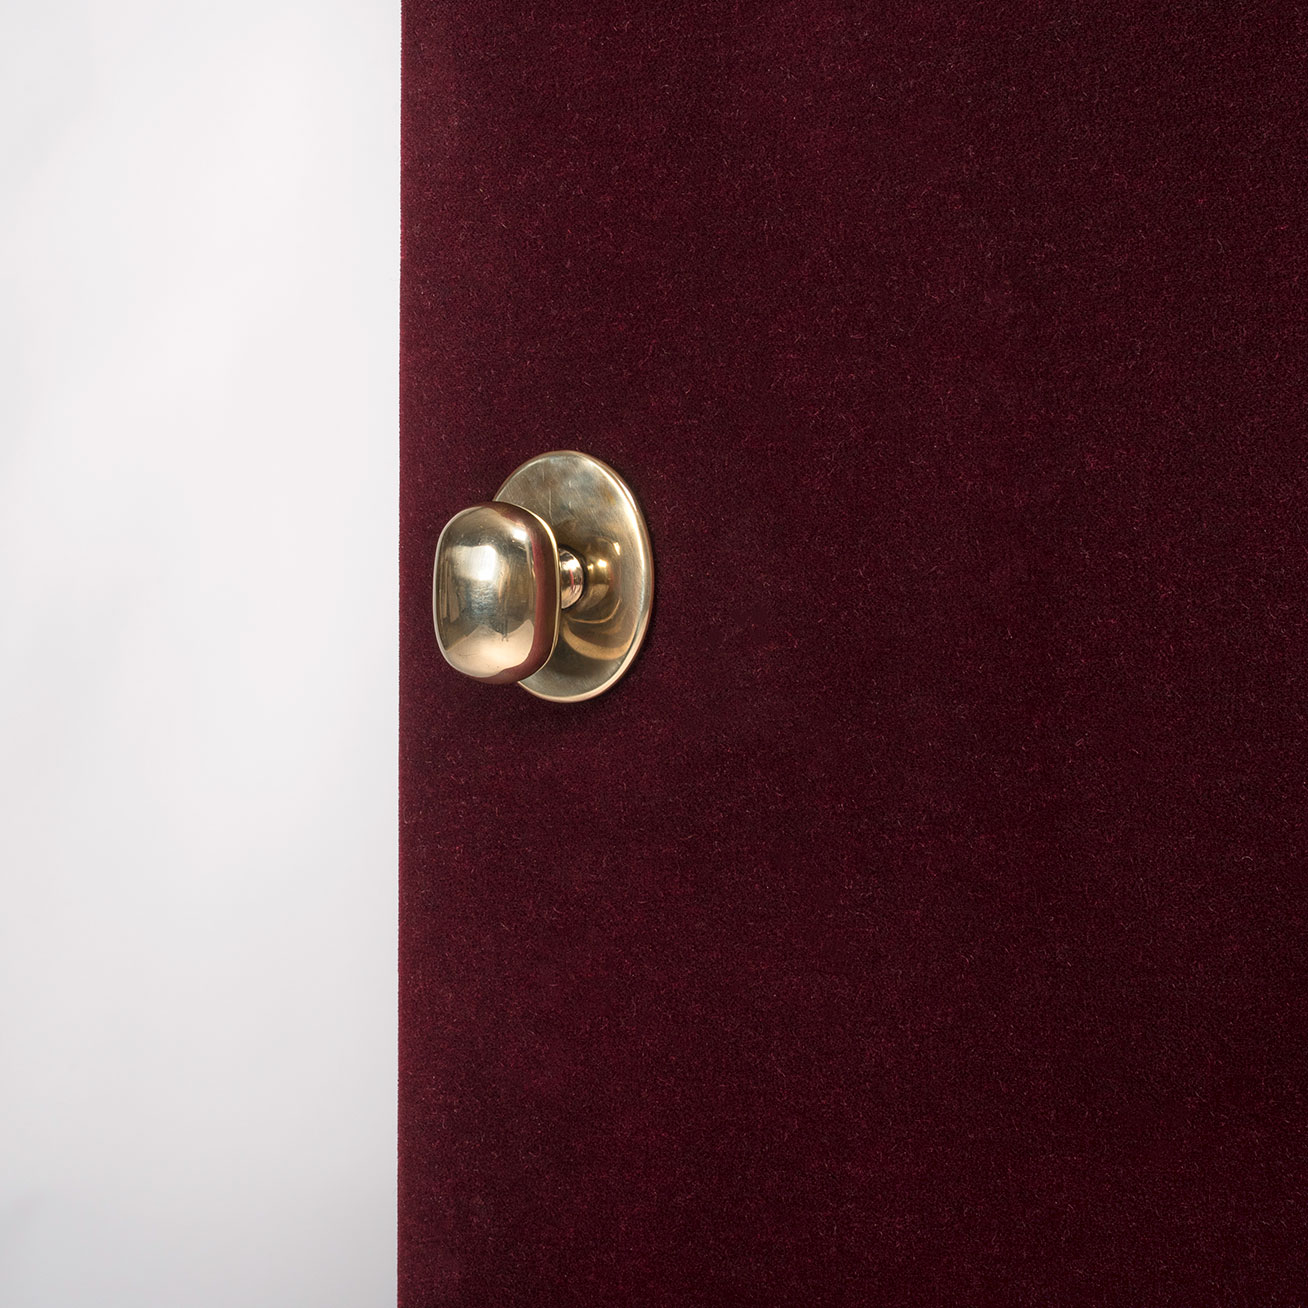 Luigi Caccia Dominioni  |                                  M 3 centered doorknob